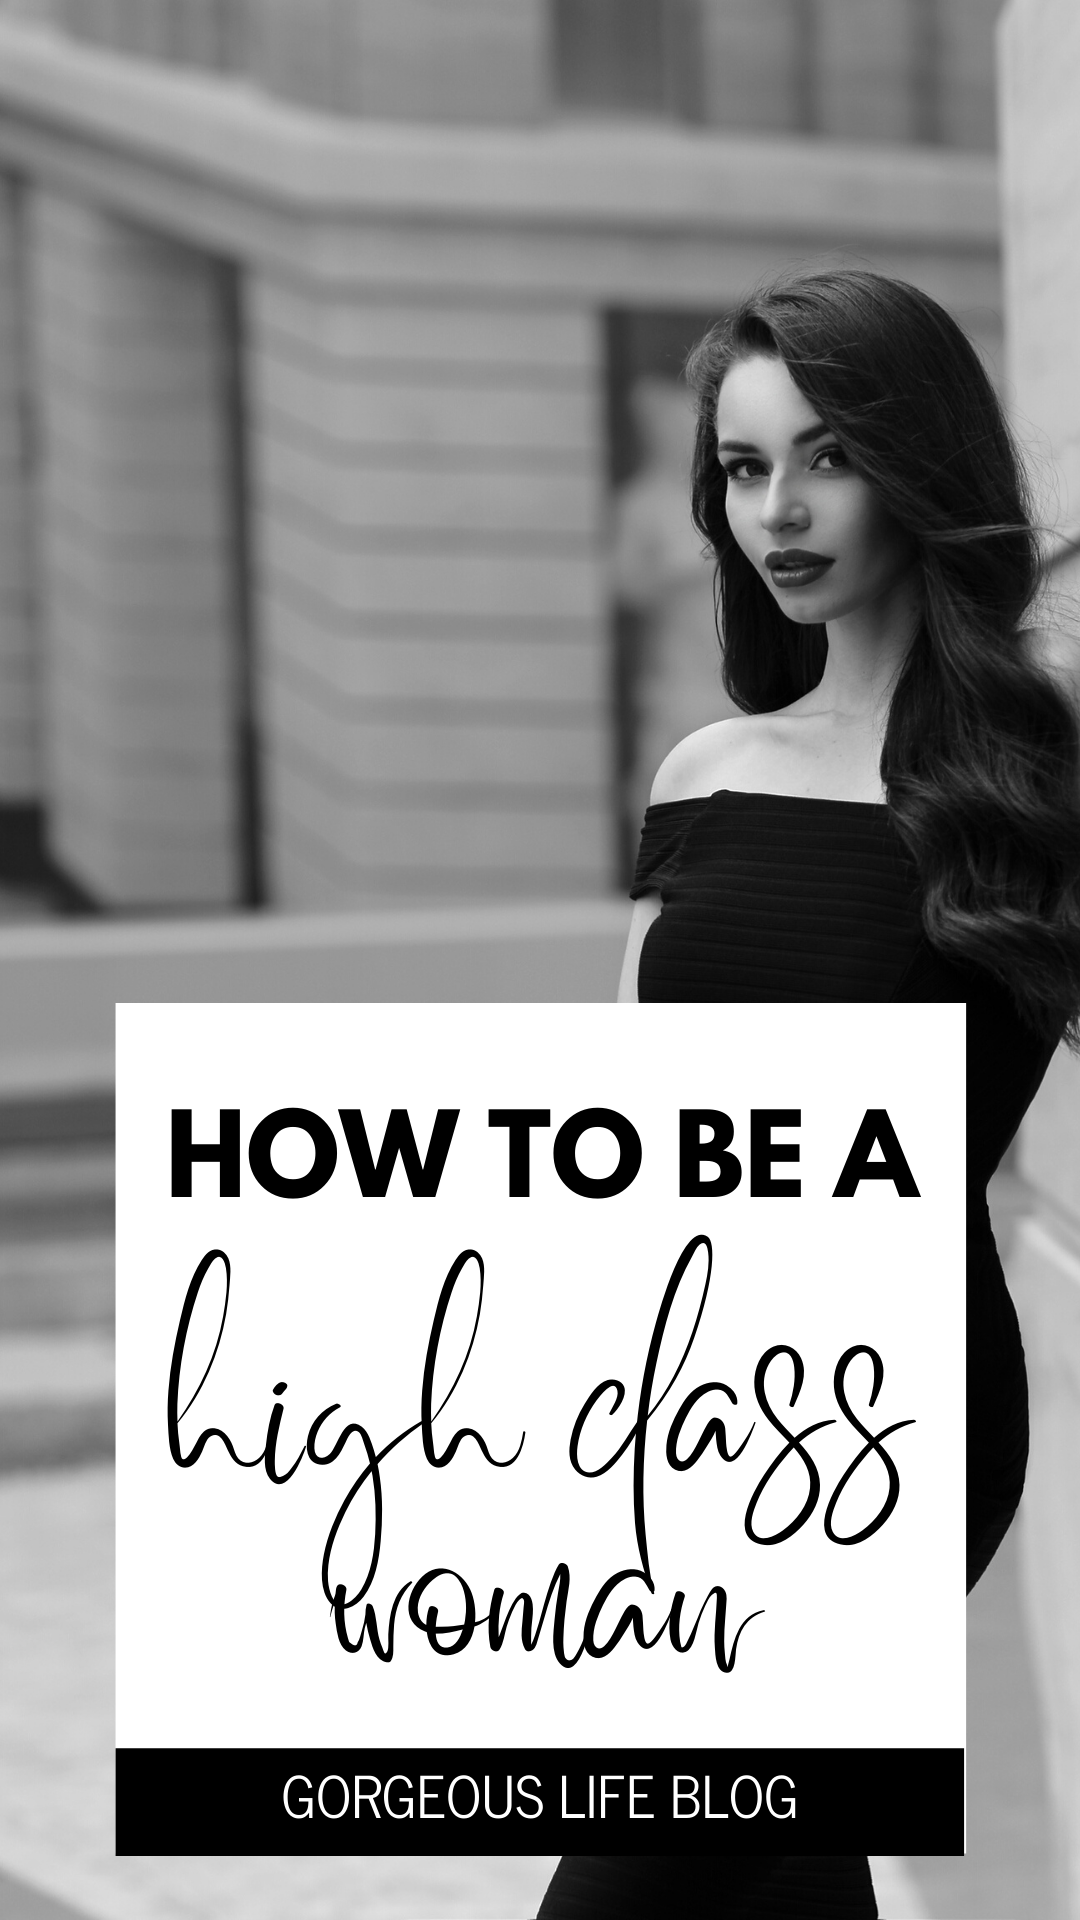 How to be a classy woman. How to be classy and elegant. Personal development self improvement tips #classywomen #elegant #personaldevelopment #selfimprovement